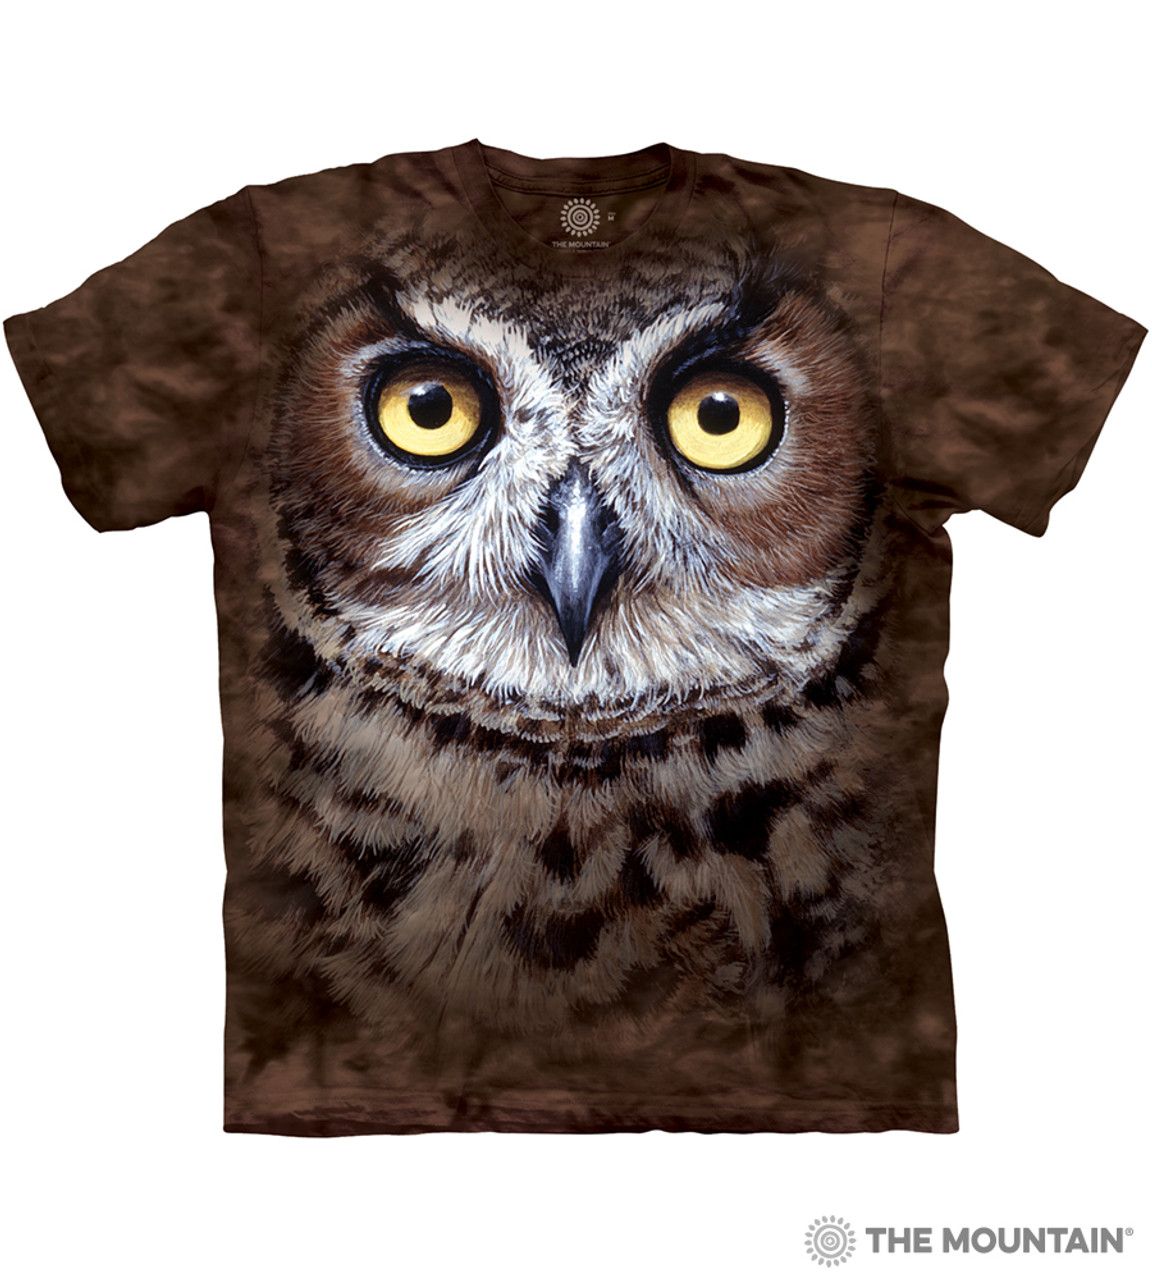 1af43649 The Mountain Adult Unisex T-Shirt - Great Horned Owl Head